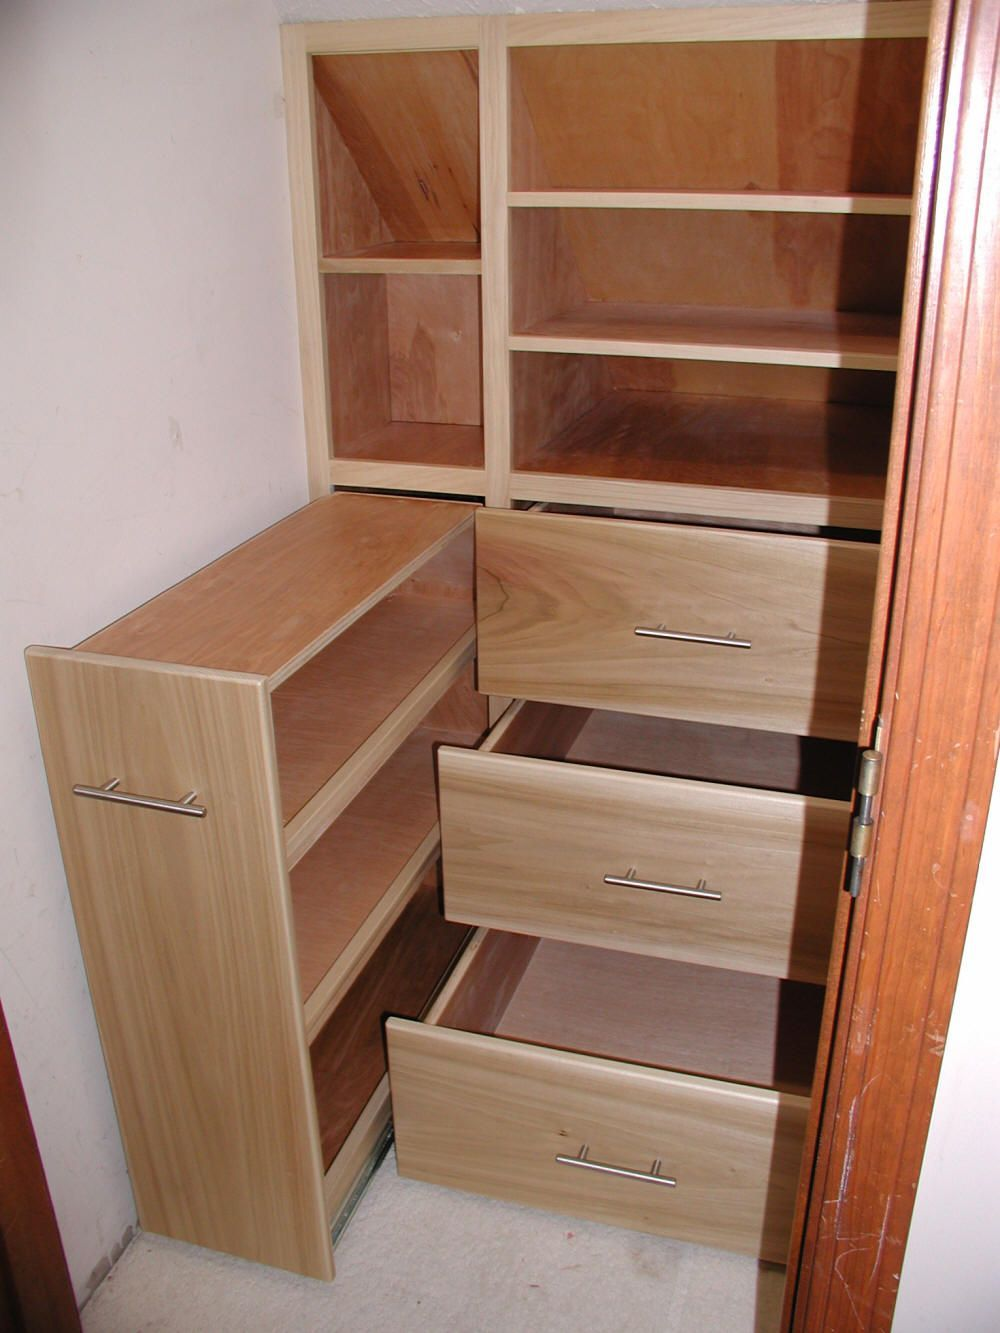 Best Under Stairs Storage Ideas For Basement Stairs Just Might 400 x 300